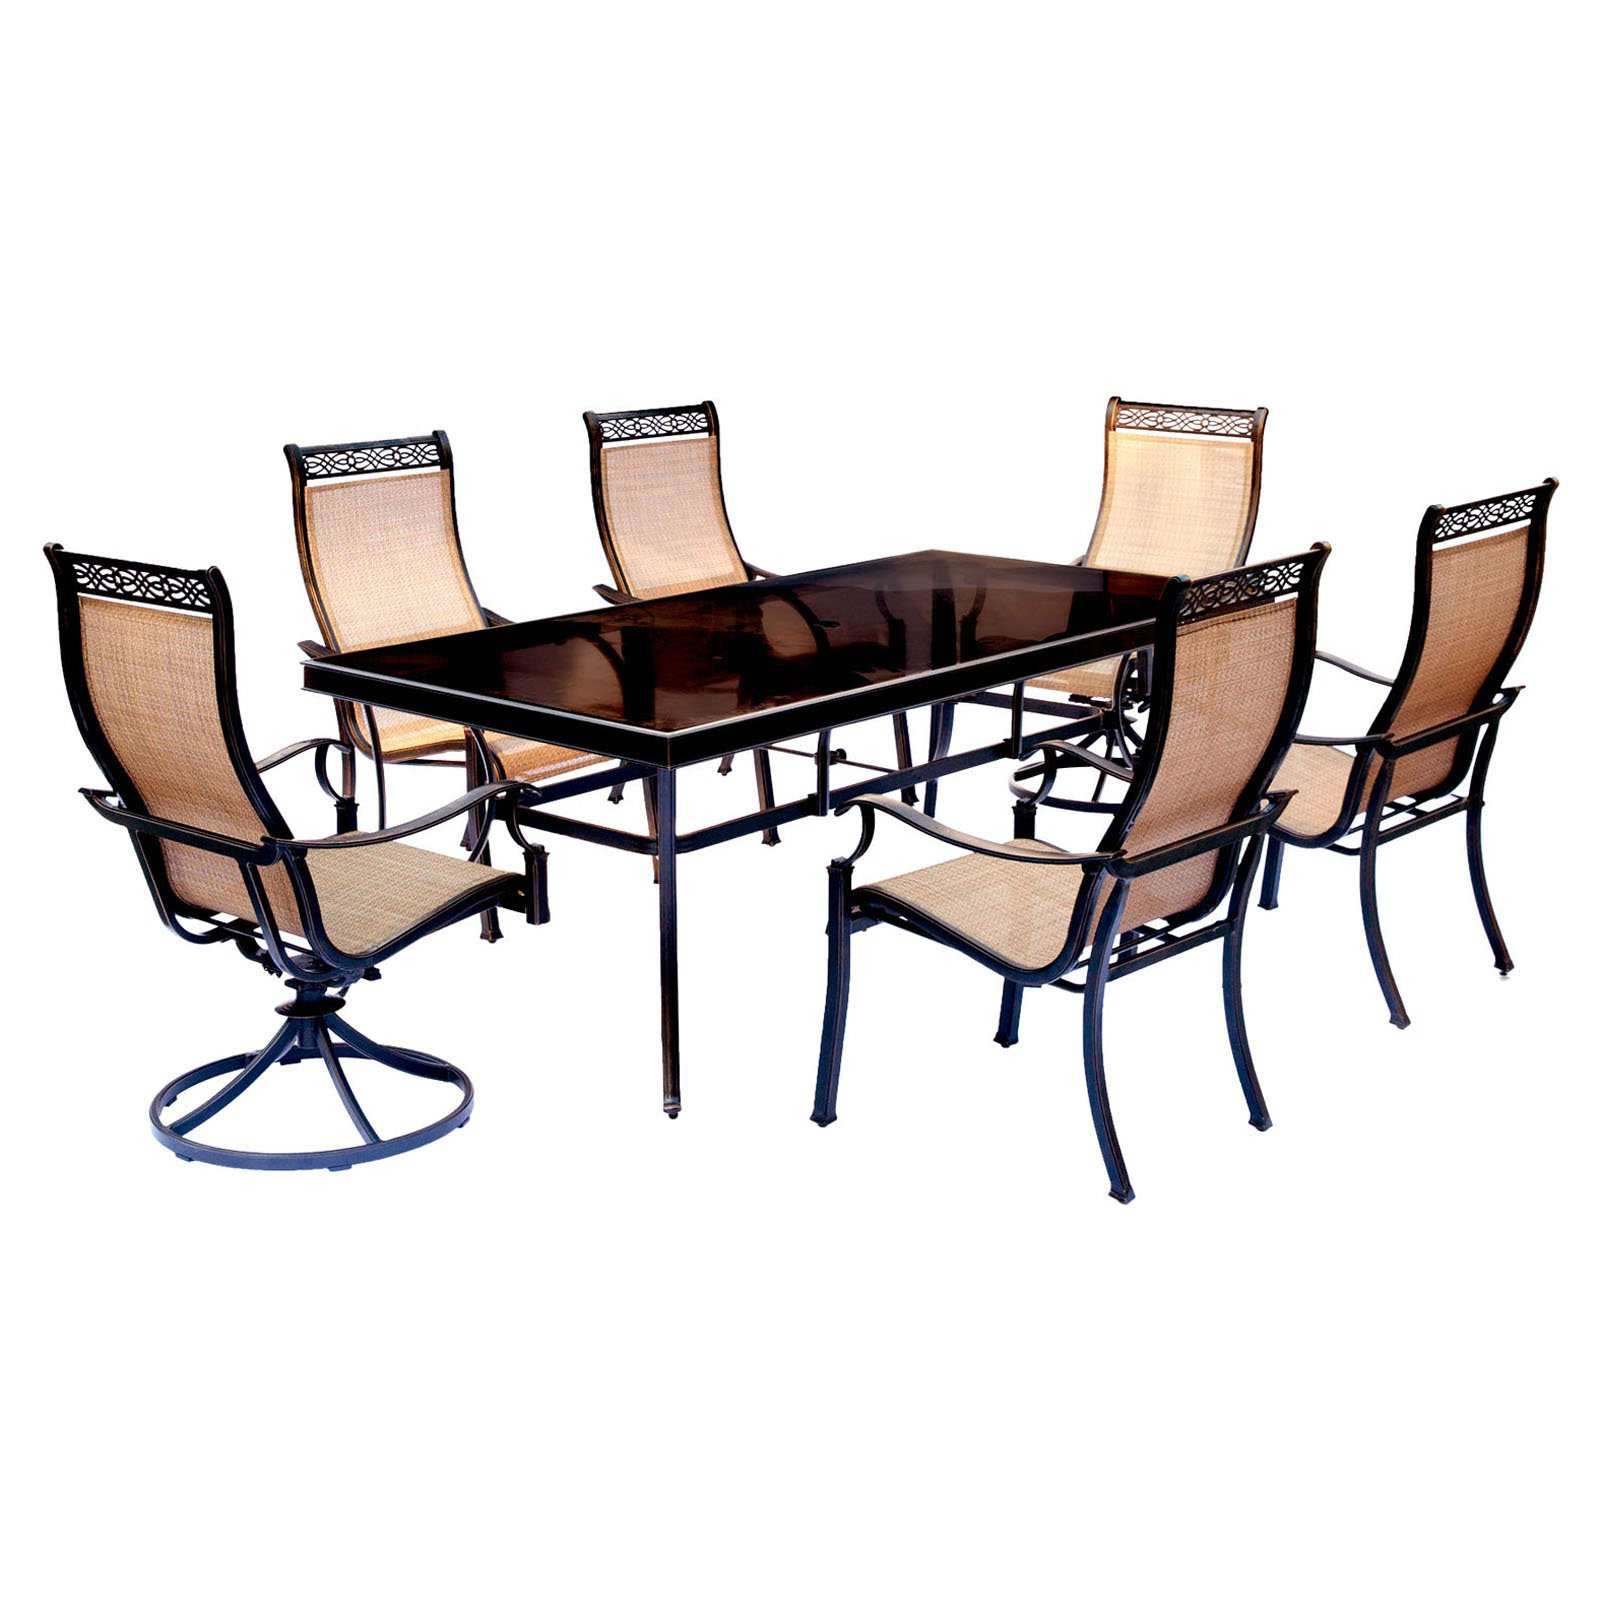 """Hanover Outdoor Monaco 7-Piece Sling Dining Set with 42"""" x 84"""" Glass-Top Table, 4 Stationary Chairs and 2 Swivel Rockers, Cedar"""